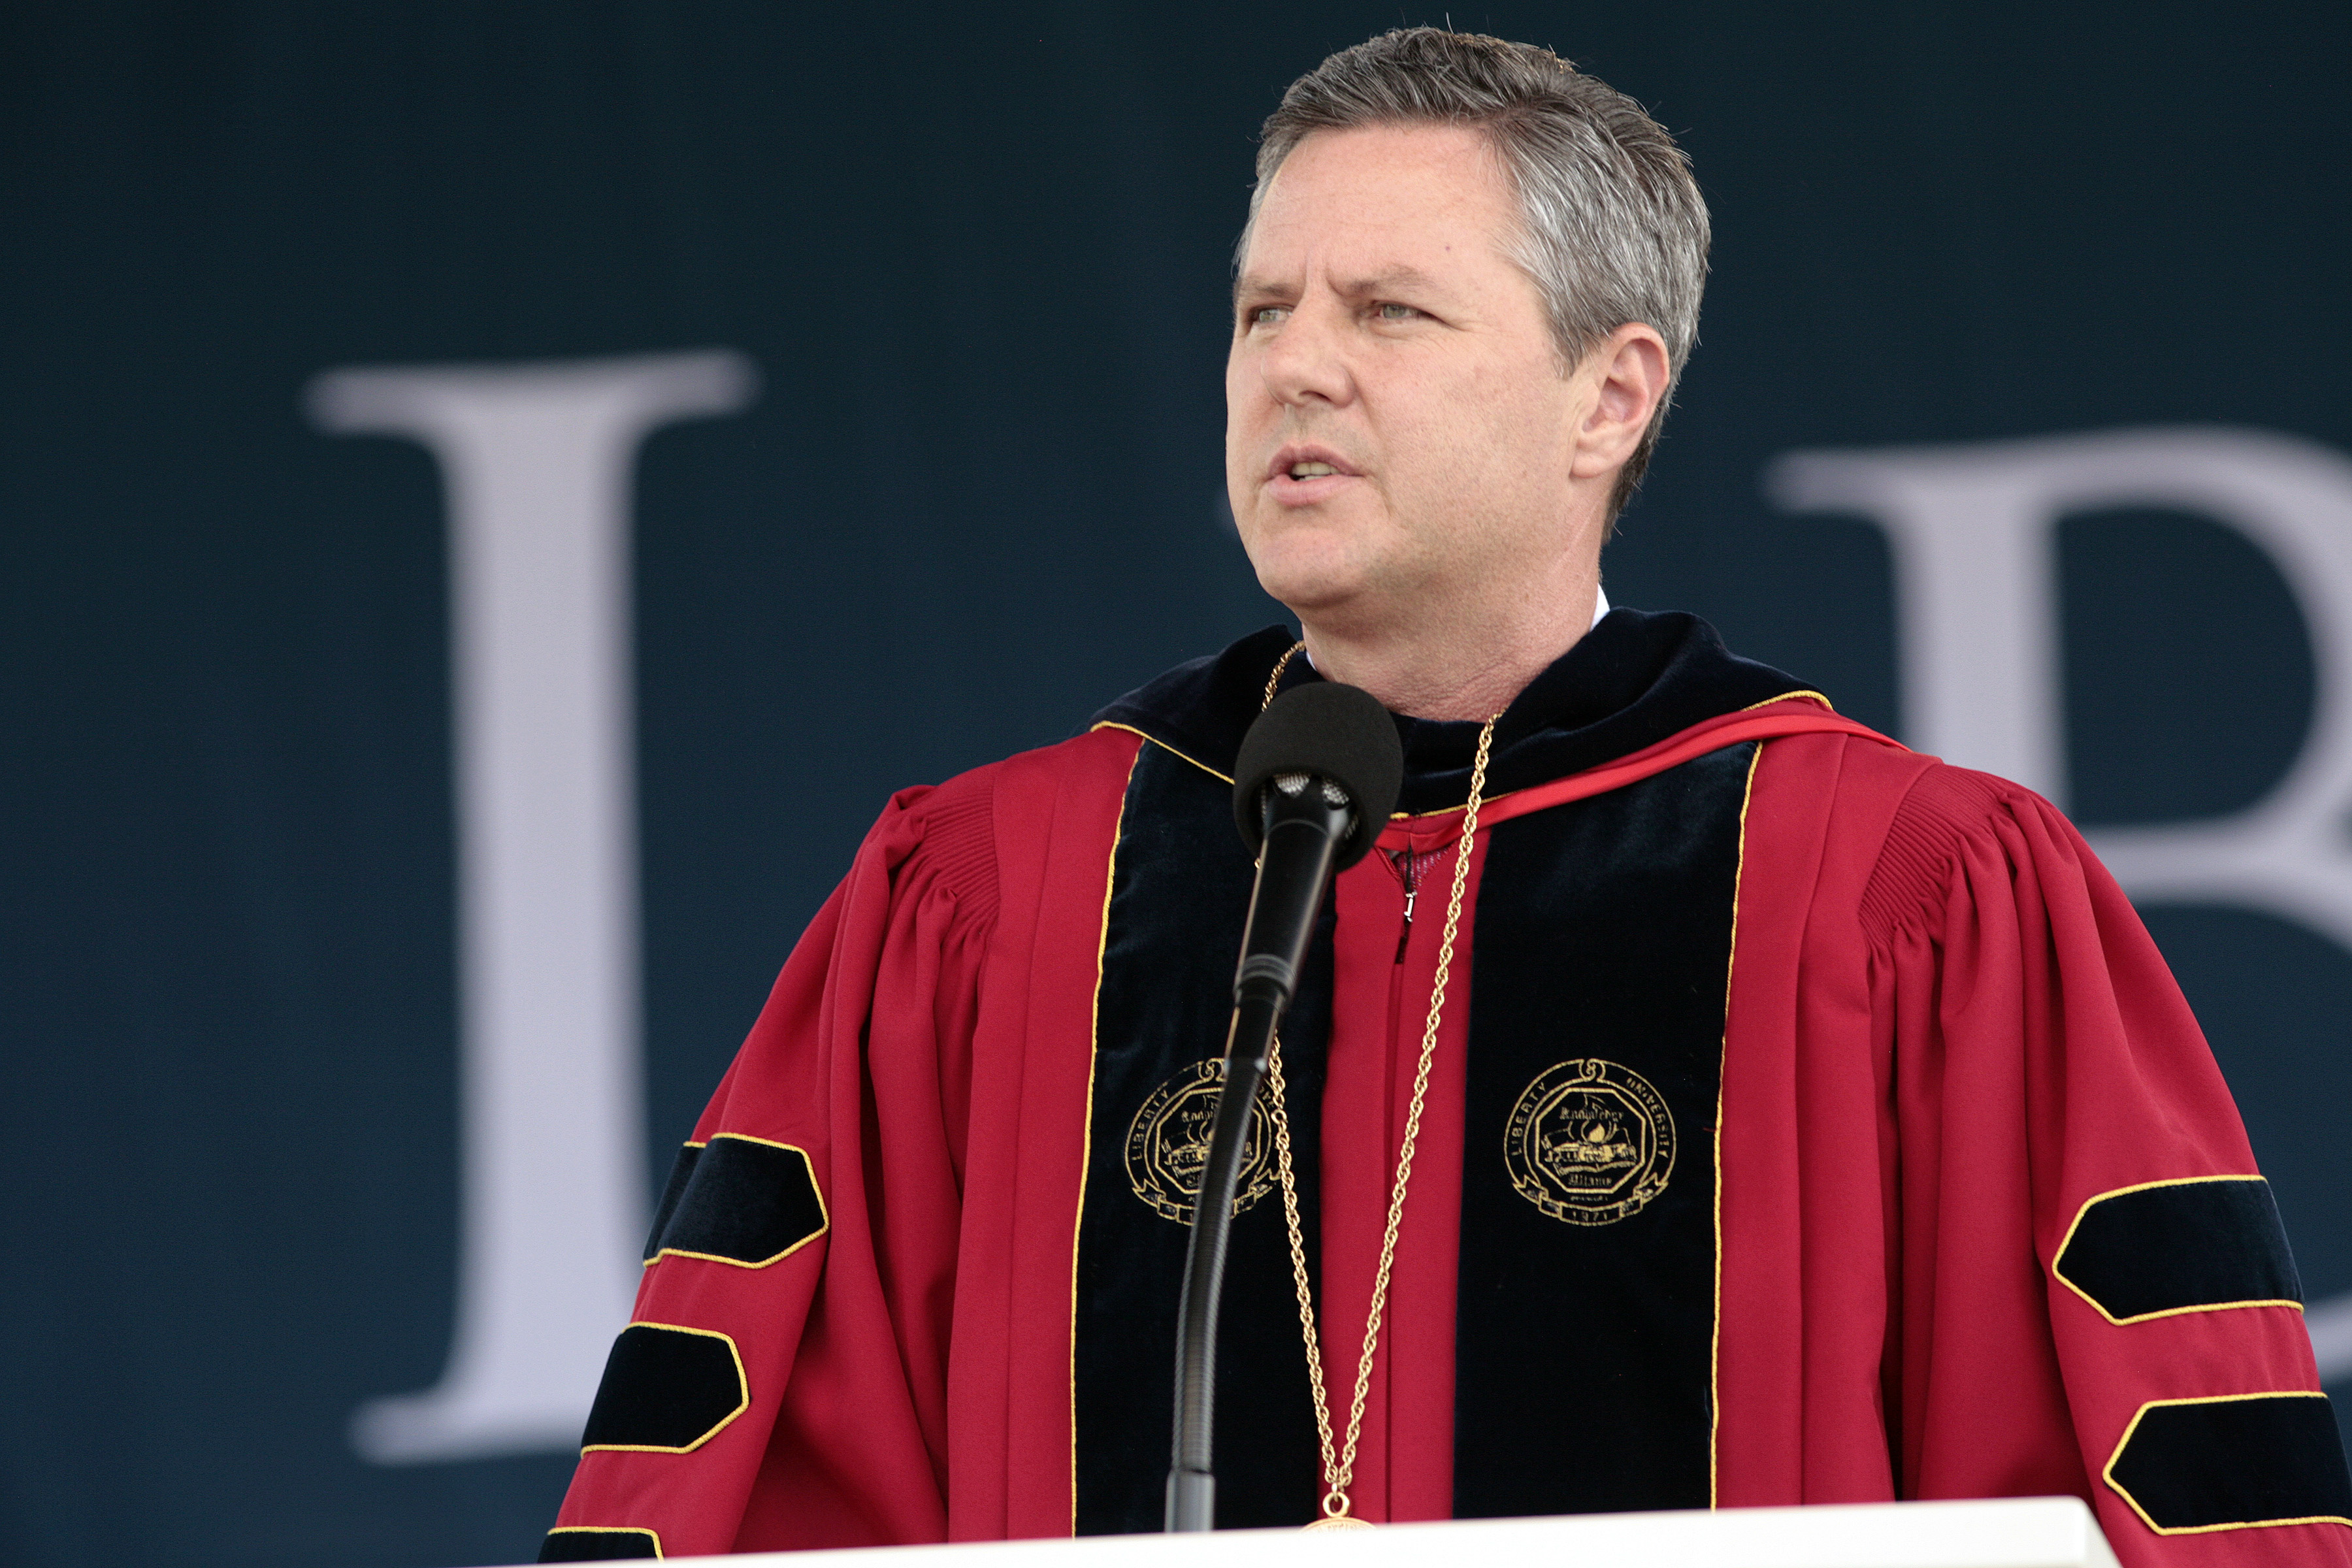 Mitt Romney Delivers Commencement Address At Liberty University